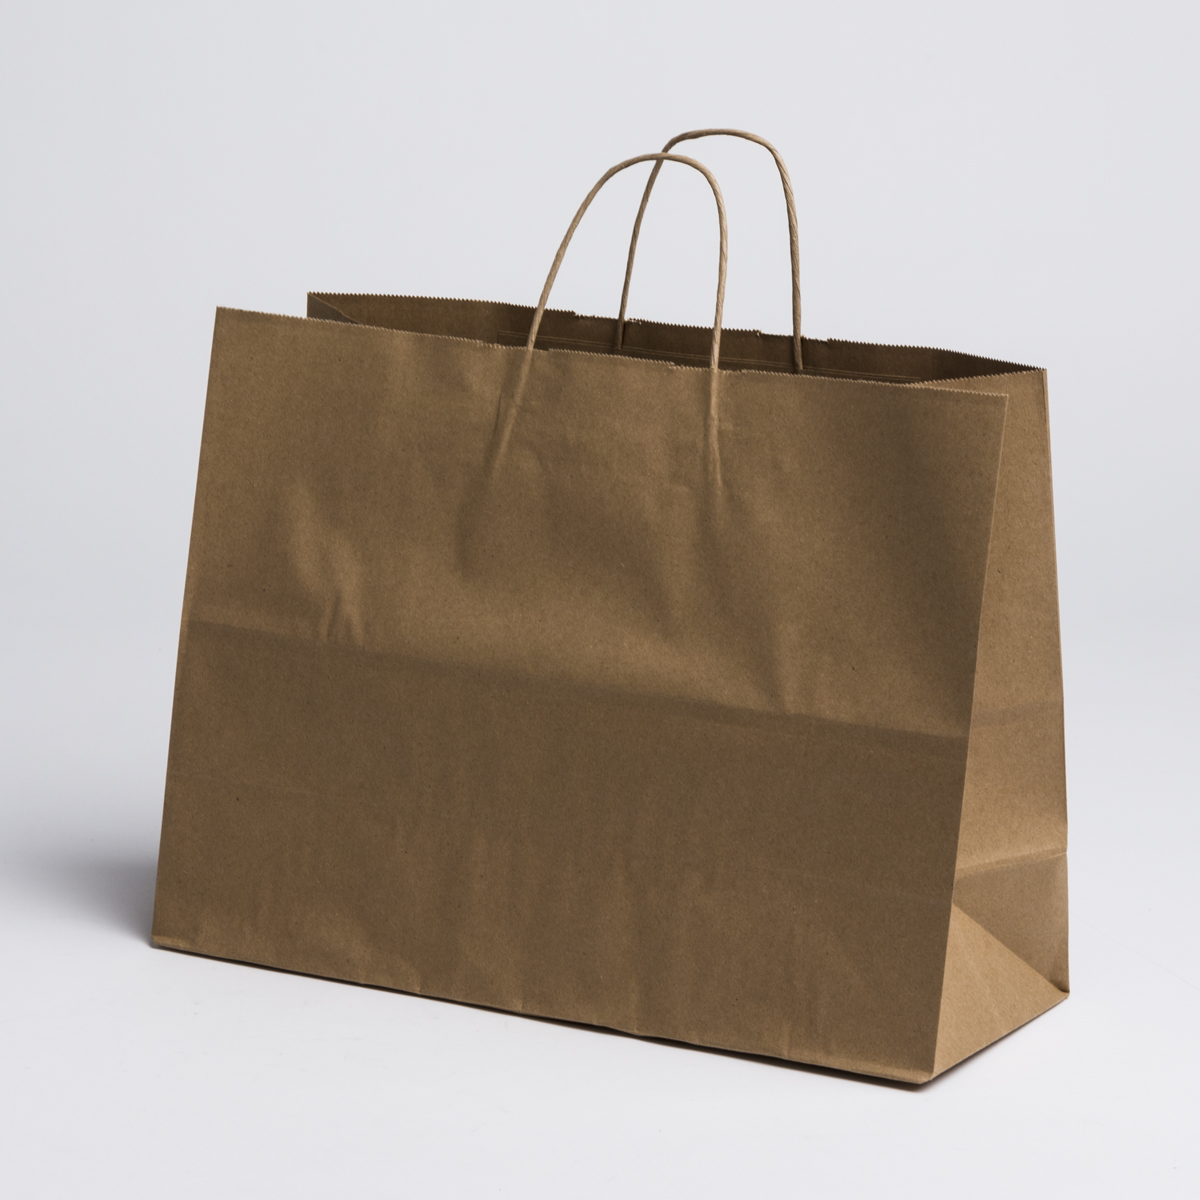 kraft paper shopping bags large a b store fixtures. Black Bedroom Furniture Sets. Home Design Ideas